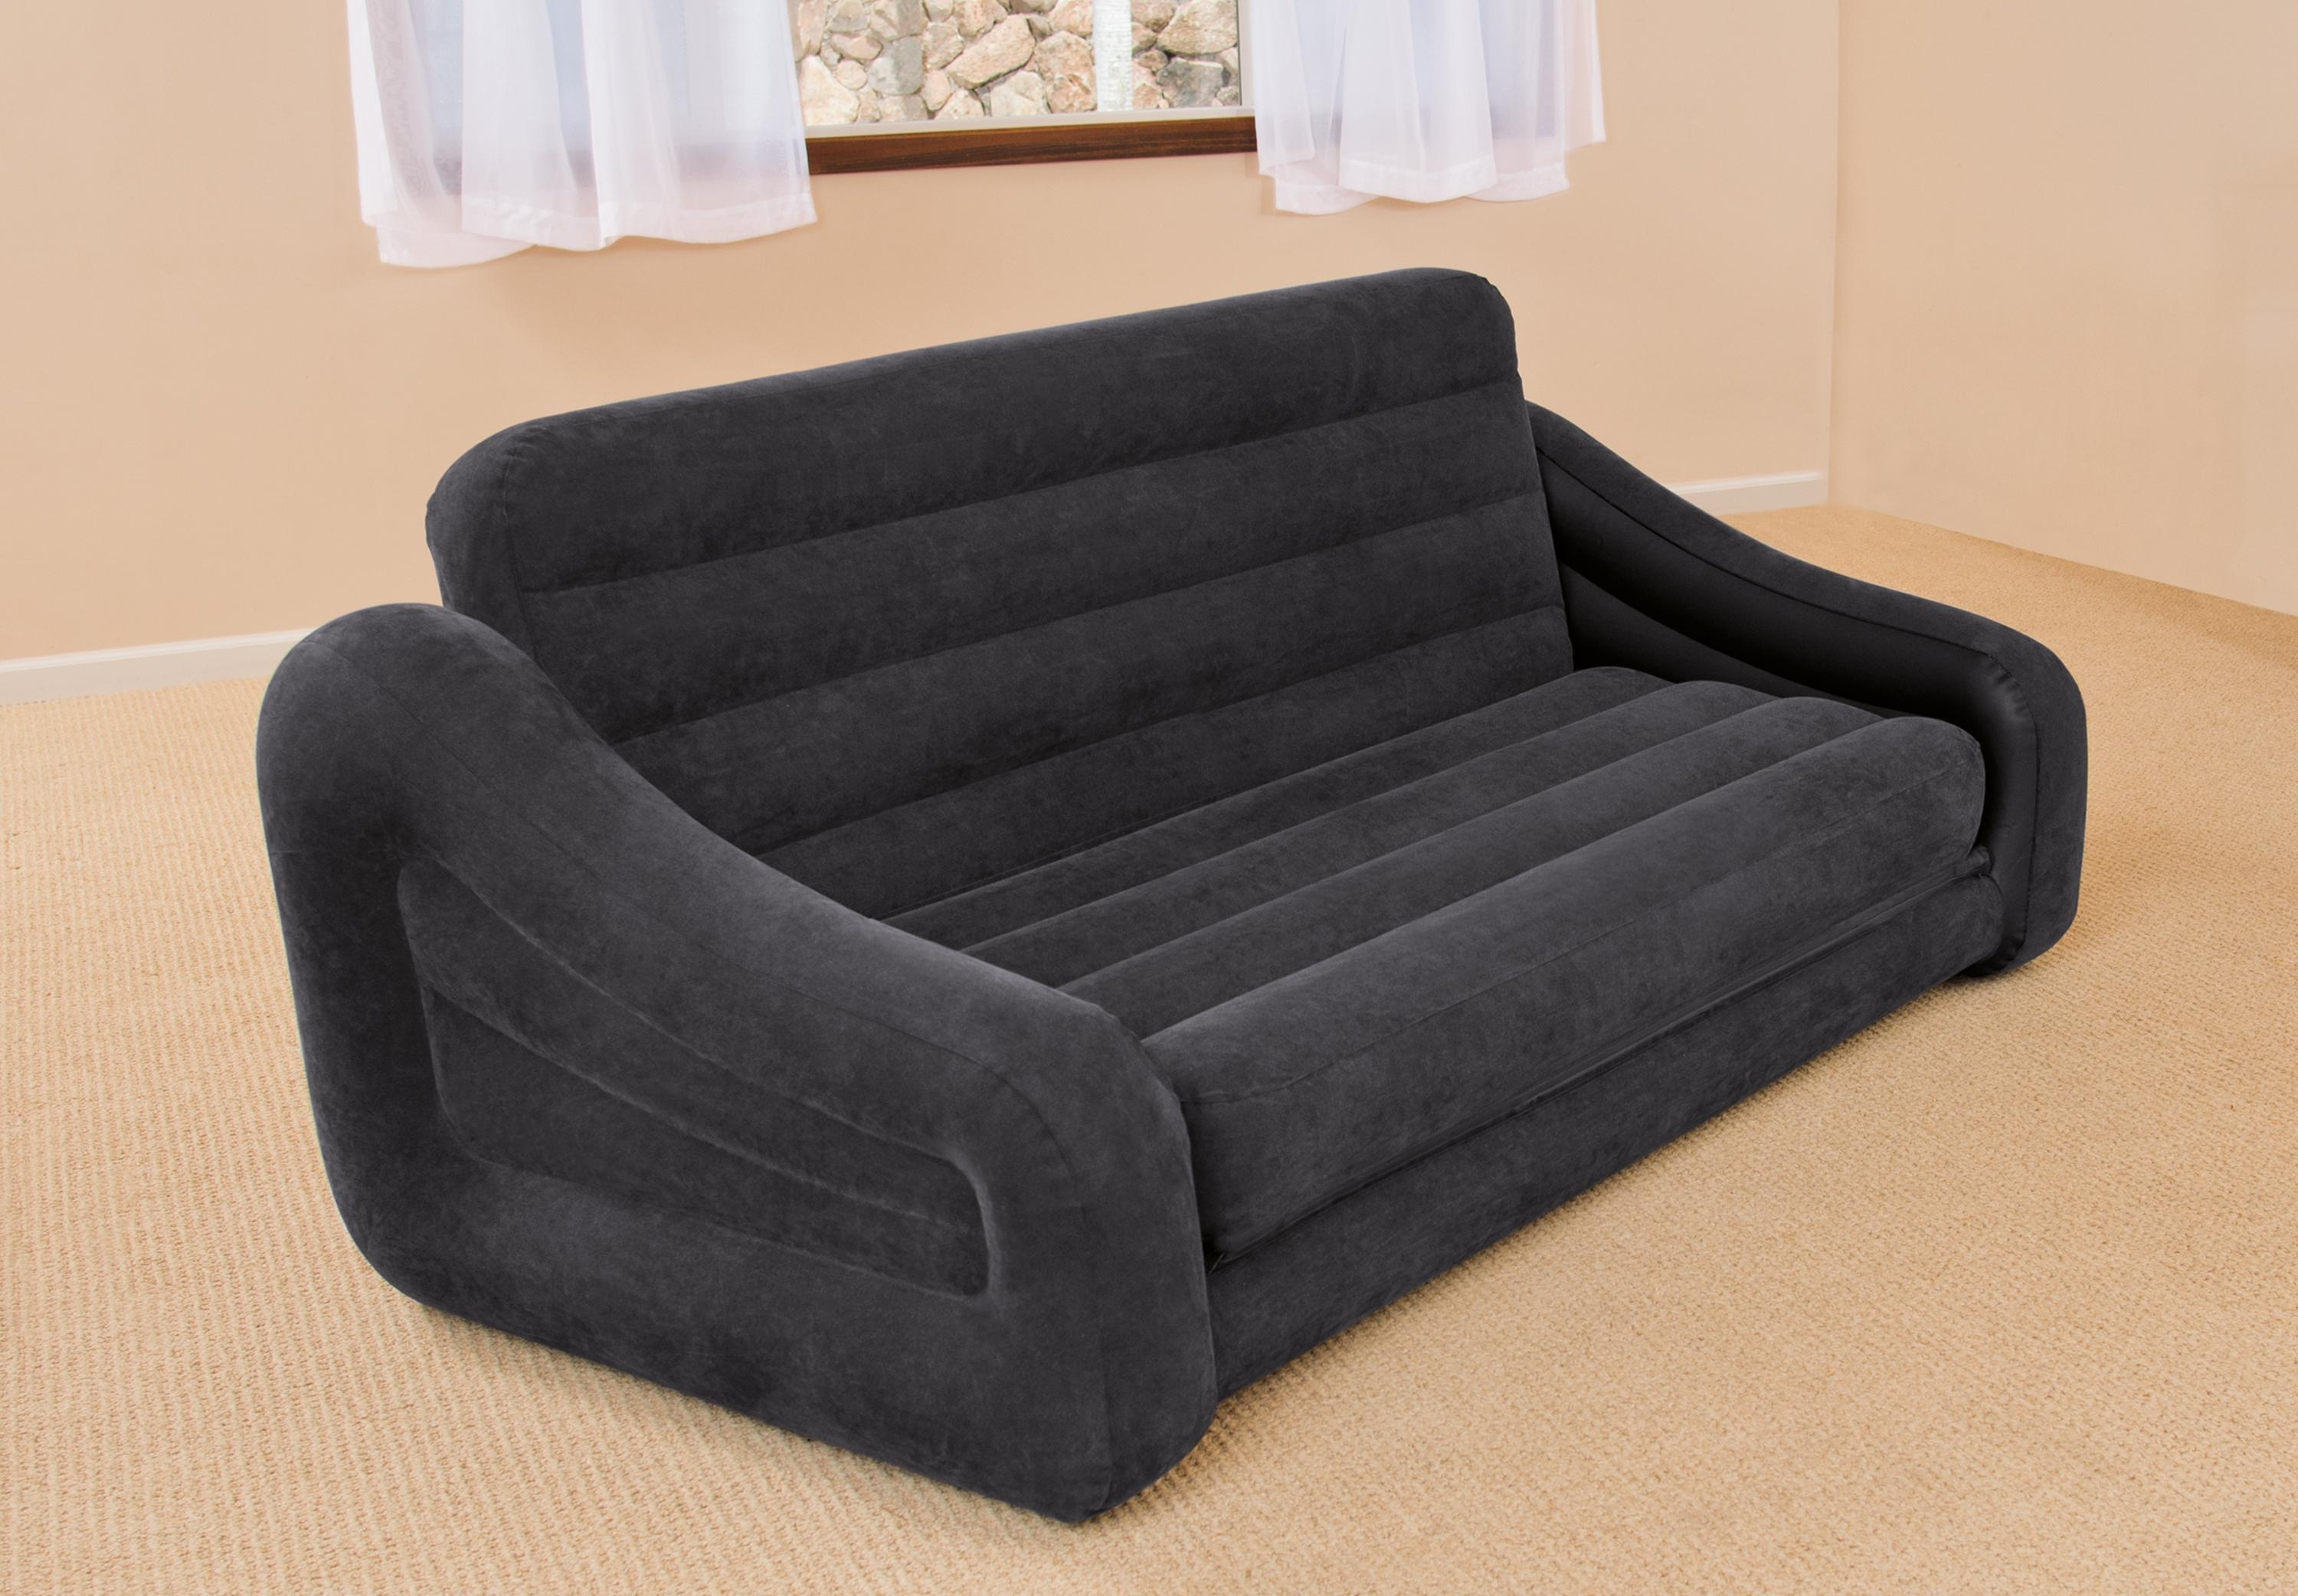 20 Choices Of Intex Air Sofa Beds Sofa Ideas